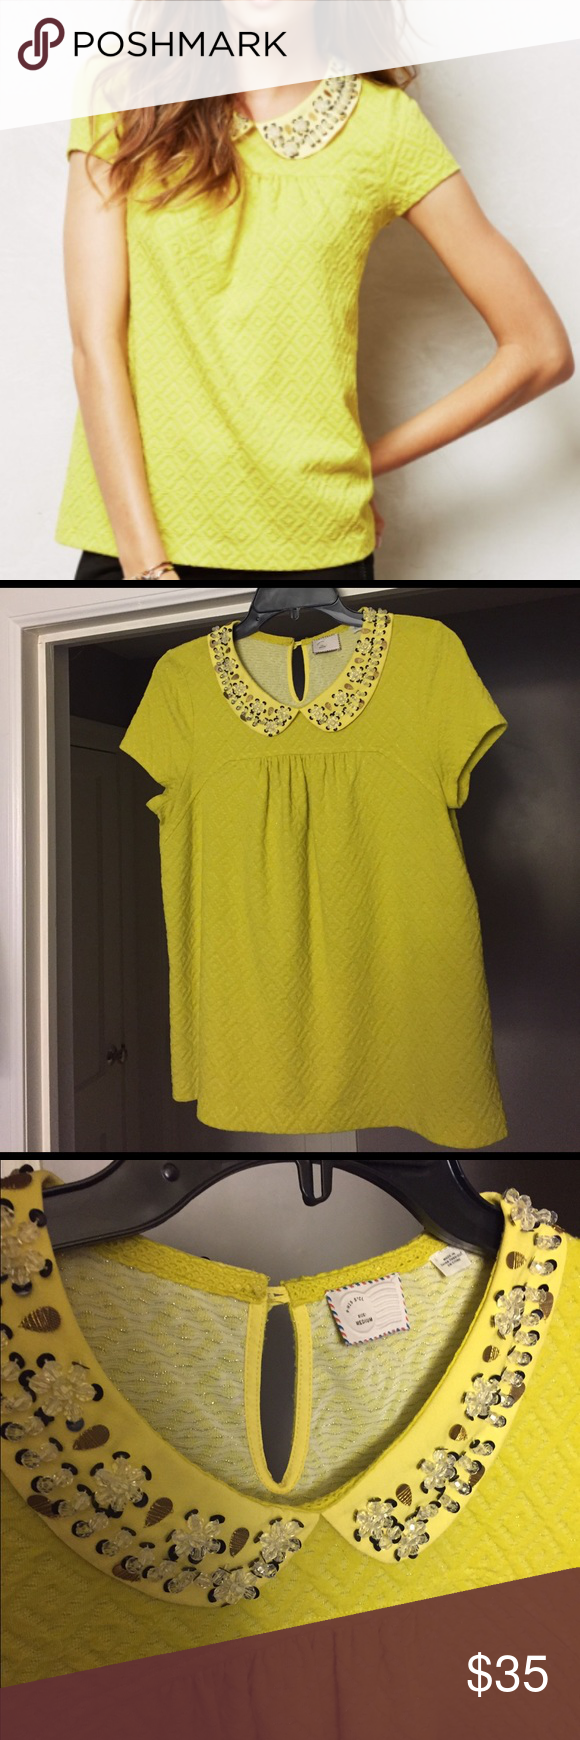 f3c578cbc620b0 Stunning Anthropologie Cassandra Jacquard Top M Beautiful Postmark brand peter  pan collar top from Anthropologie in a size M. Material is substantial and  ...